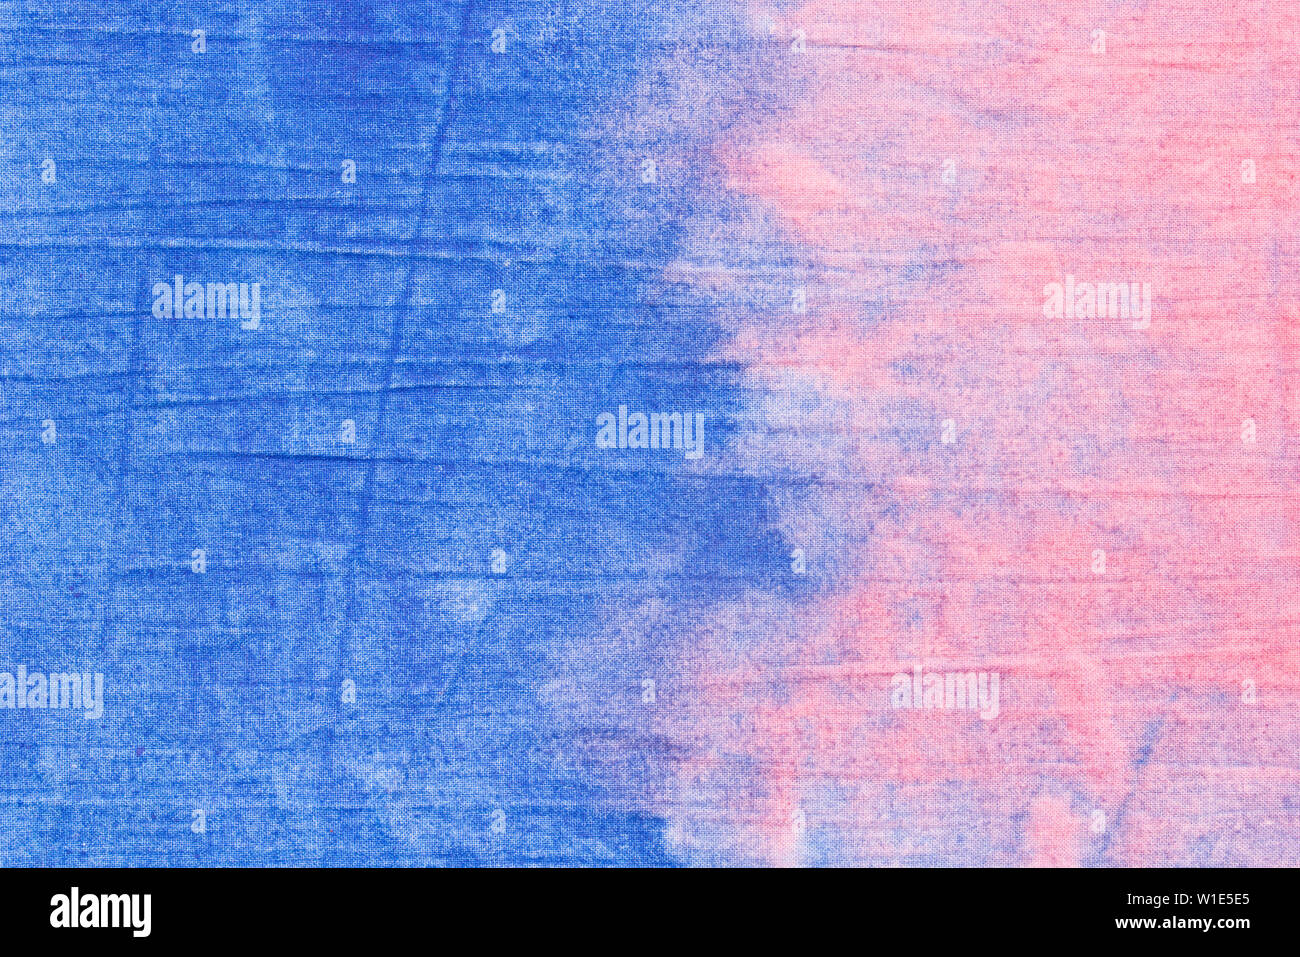 pink and blue color painted textile background - Stock Image